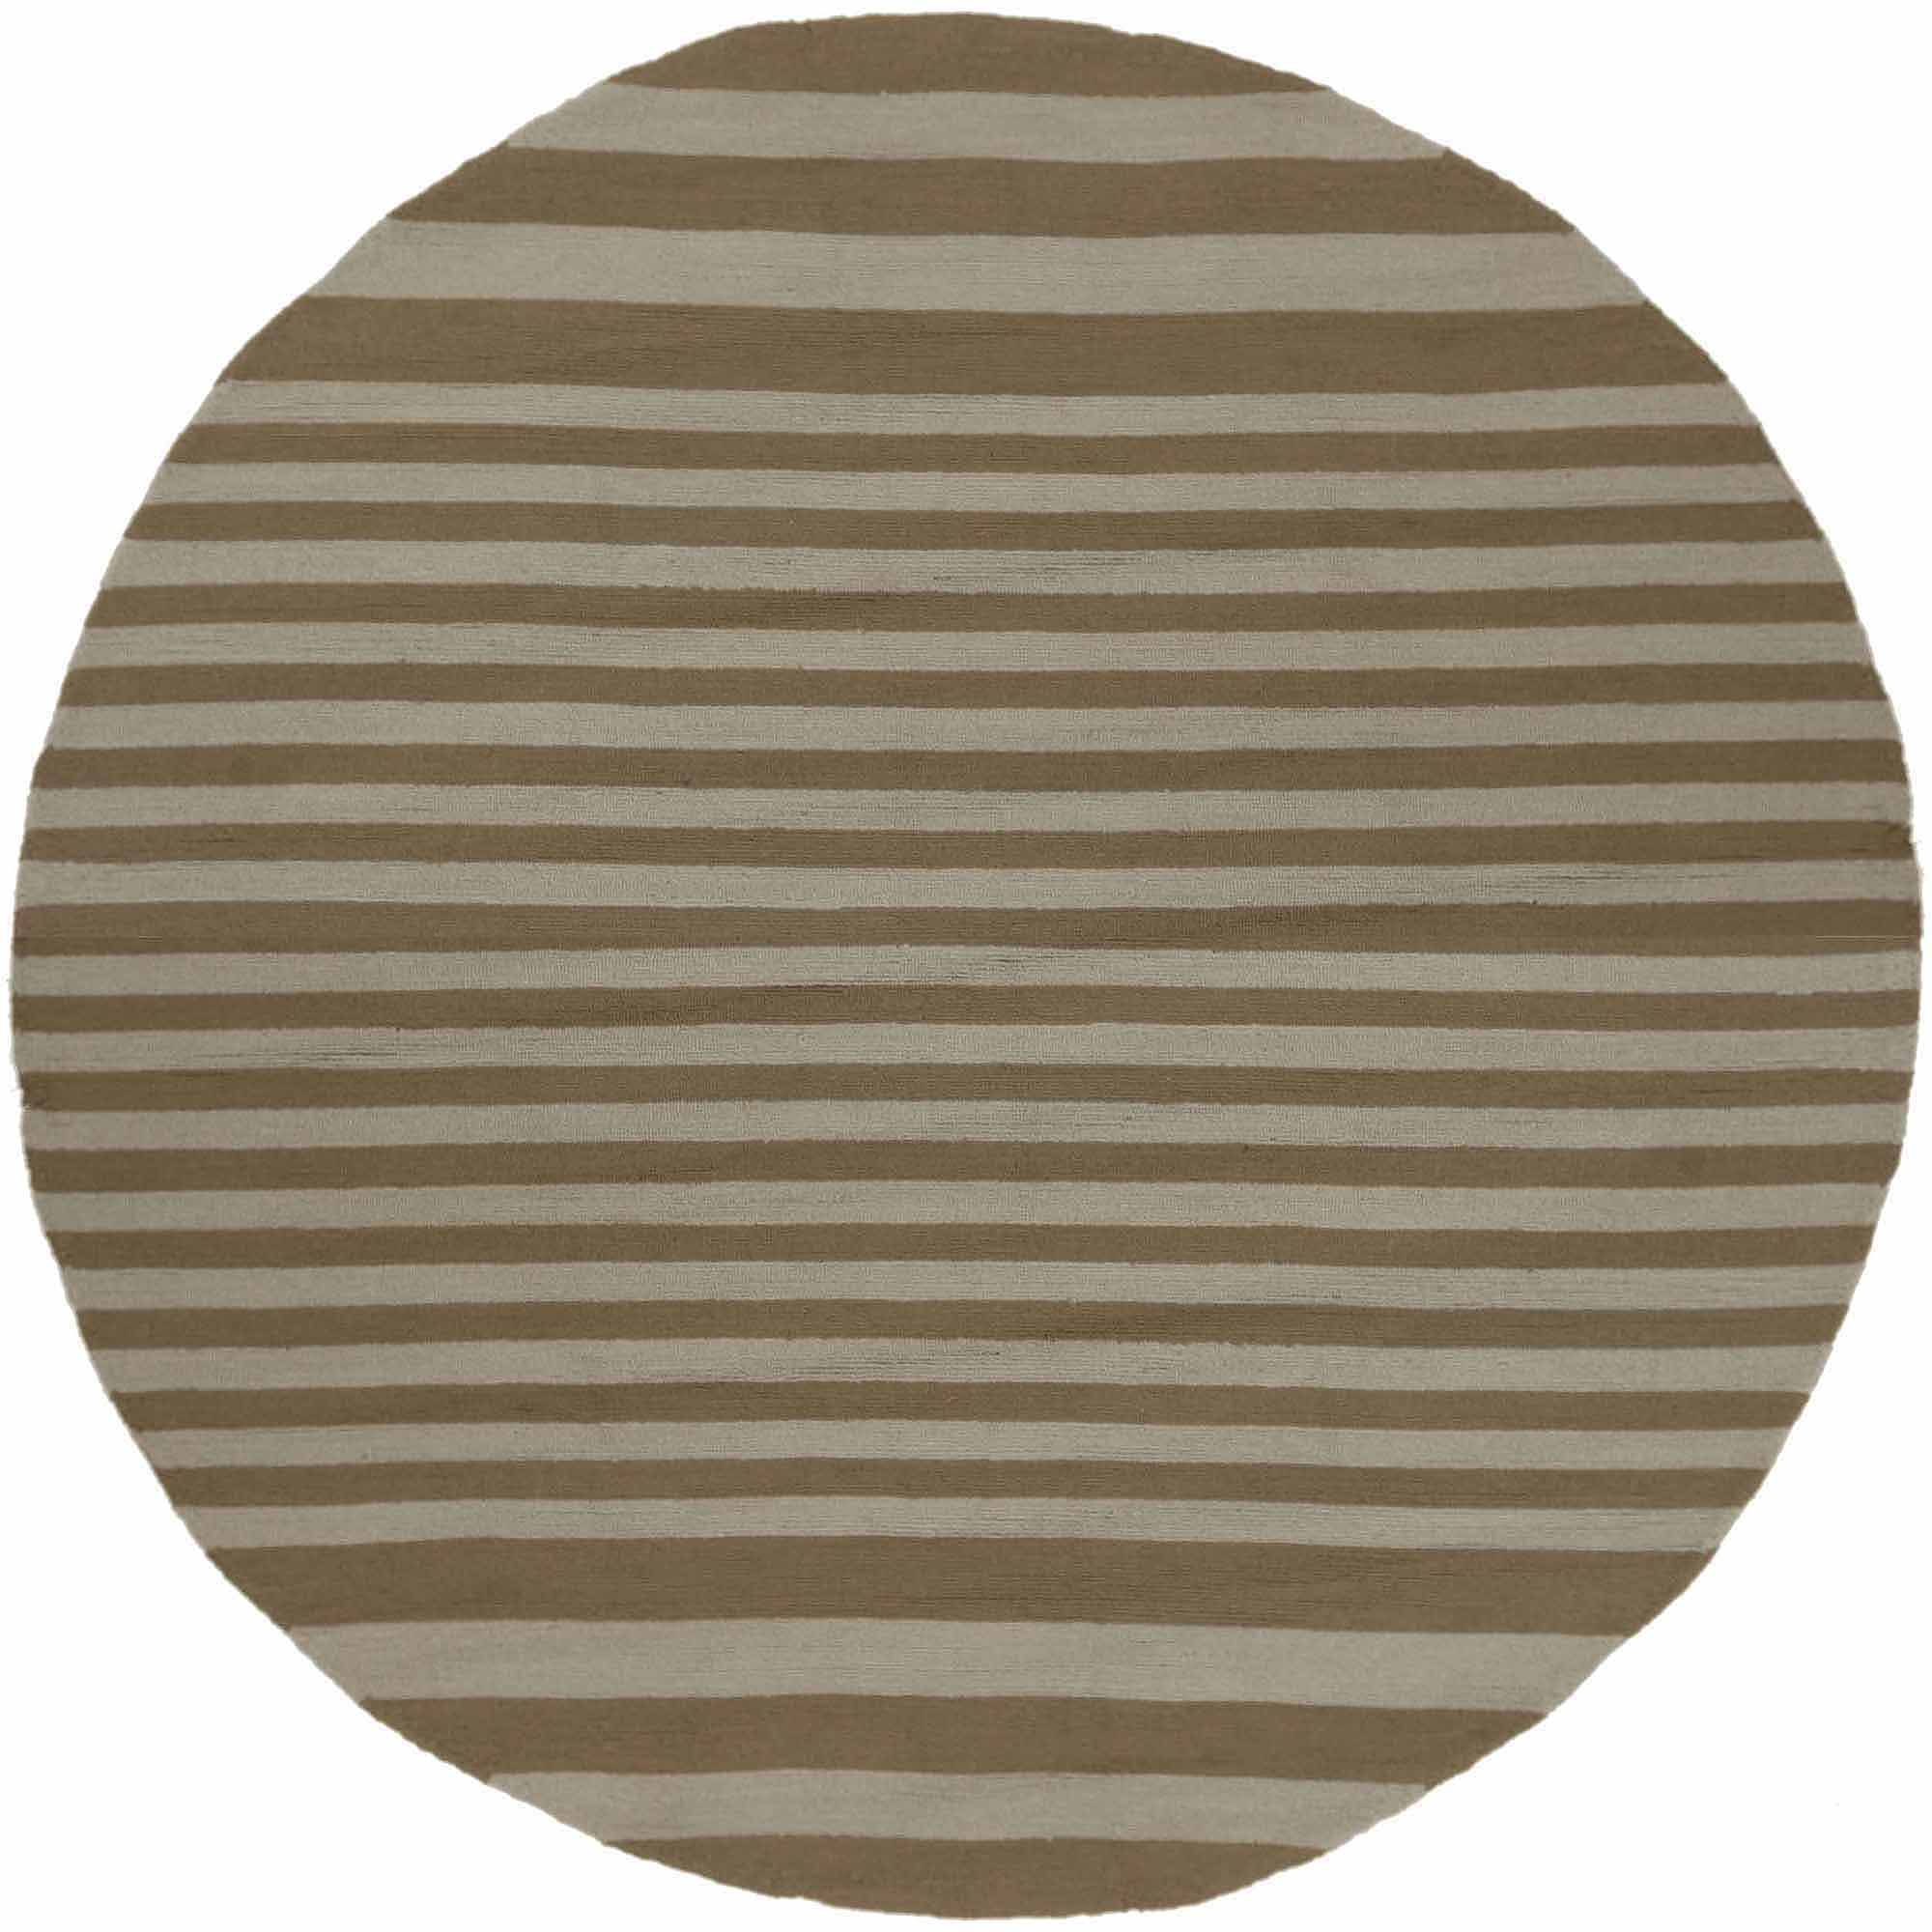 Art of Knot Yunkai Hand Hooked Cape Cod Sailing Stripe Indoor/Outdoor Area Rug, Moss